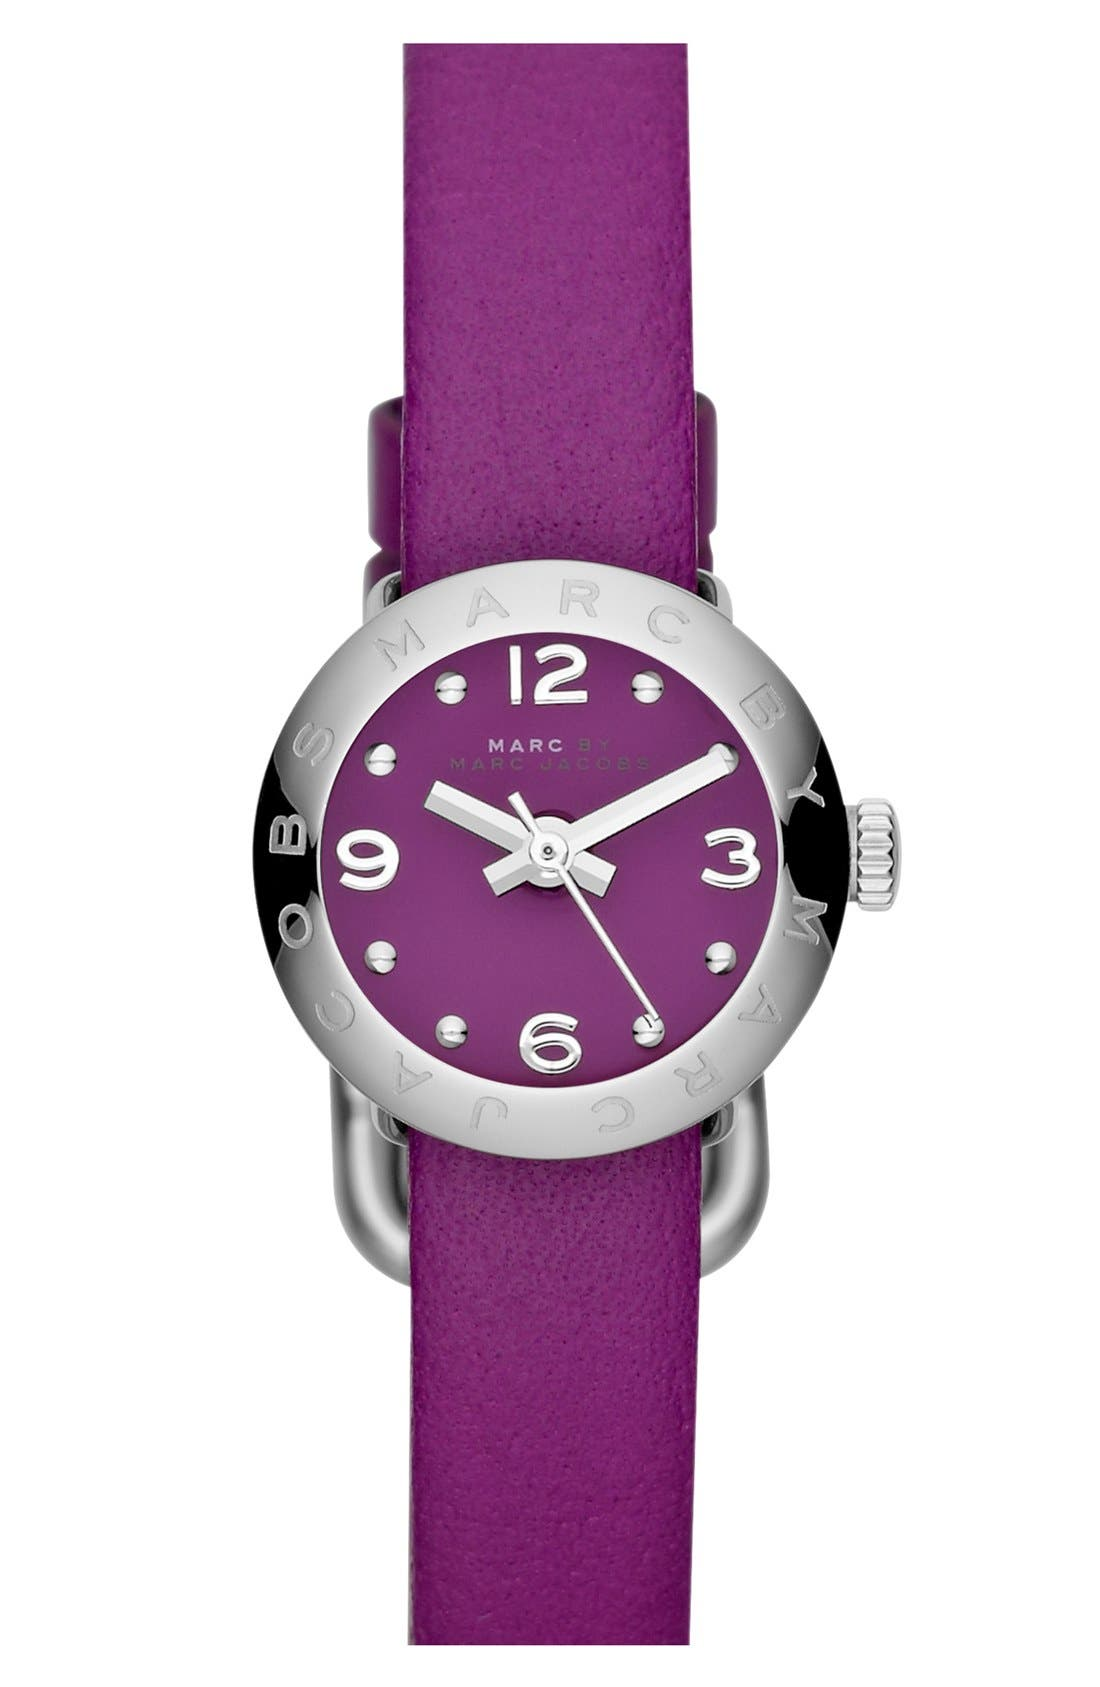 Main Image - MARC JACOBS 'Amy Dinky' Leather Strap Watch, 20mm